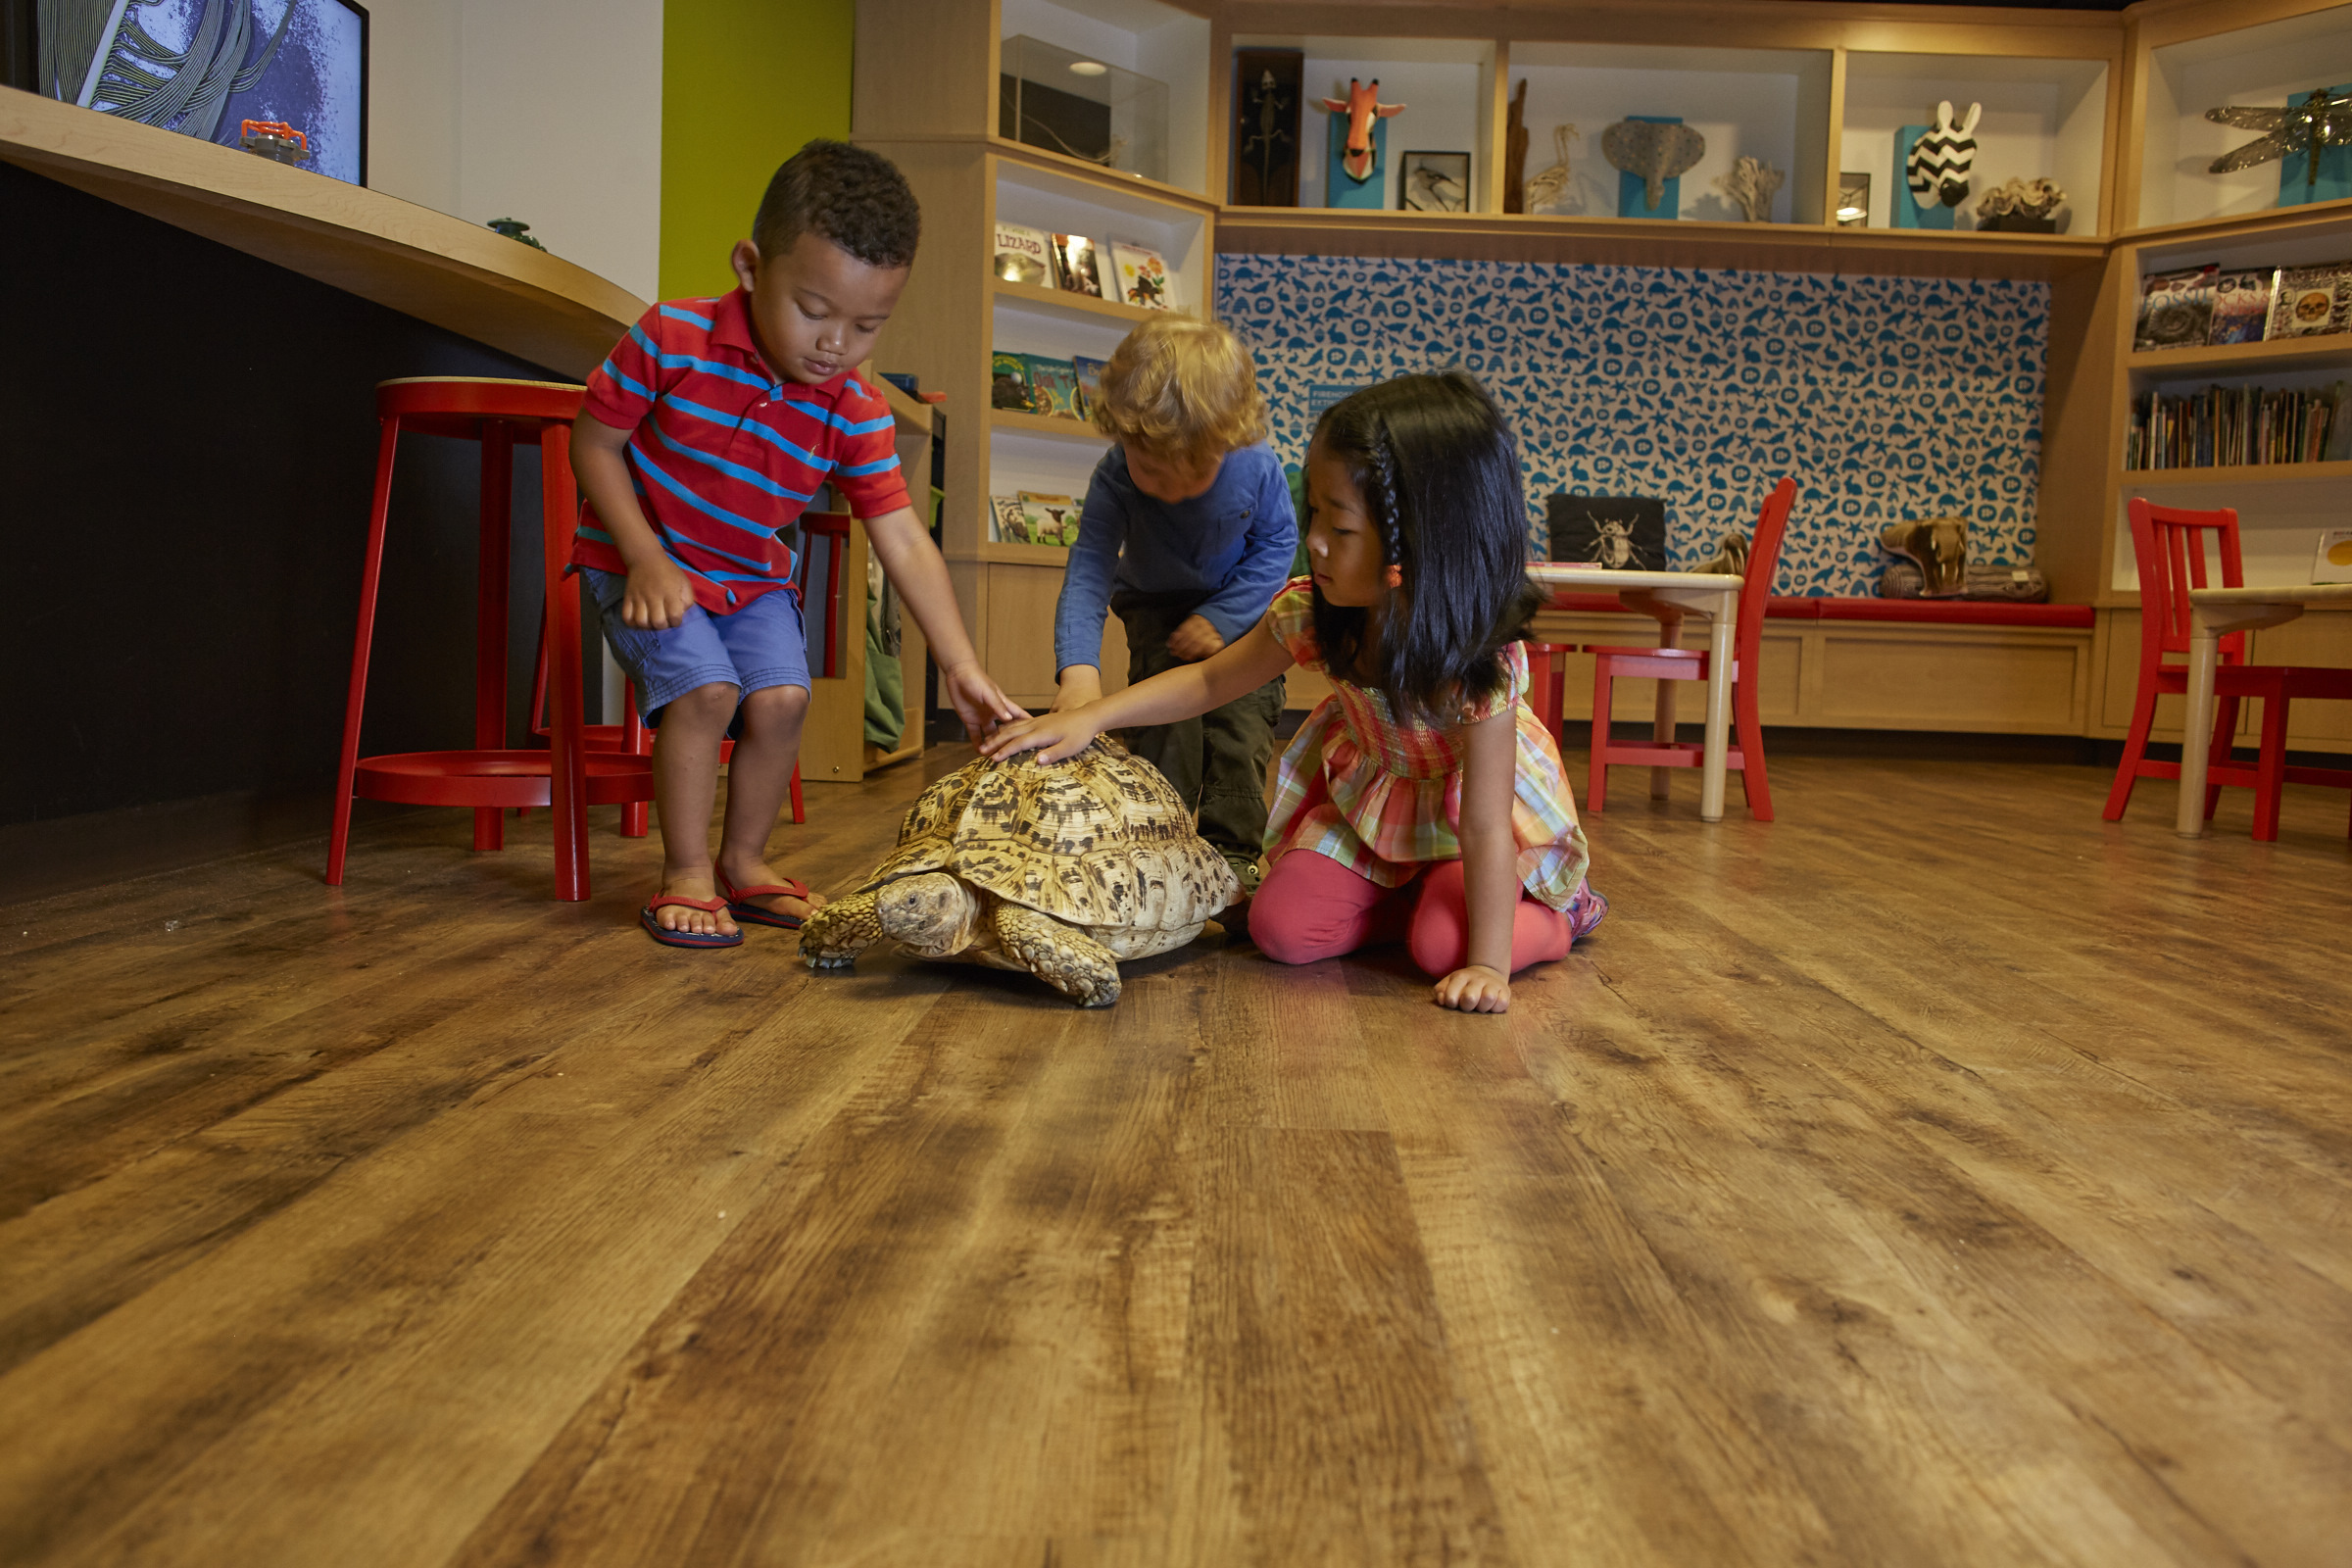 Visit Outside In, the children's discovery center at the Academy of Natural Sciences.